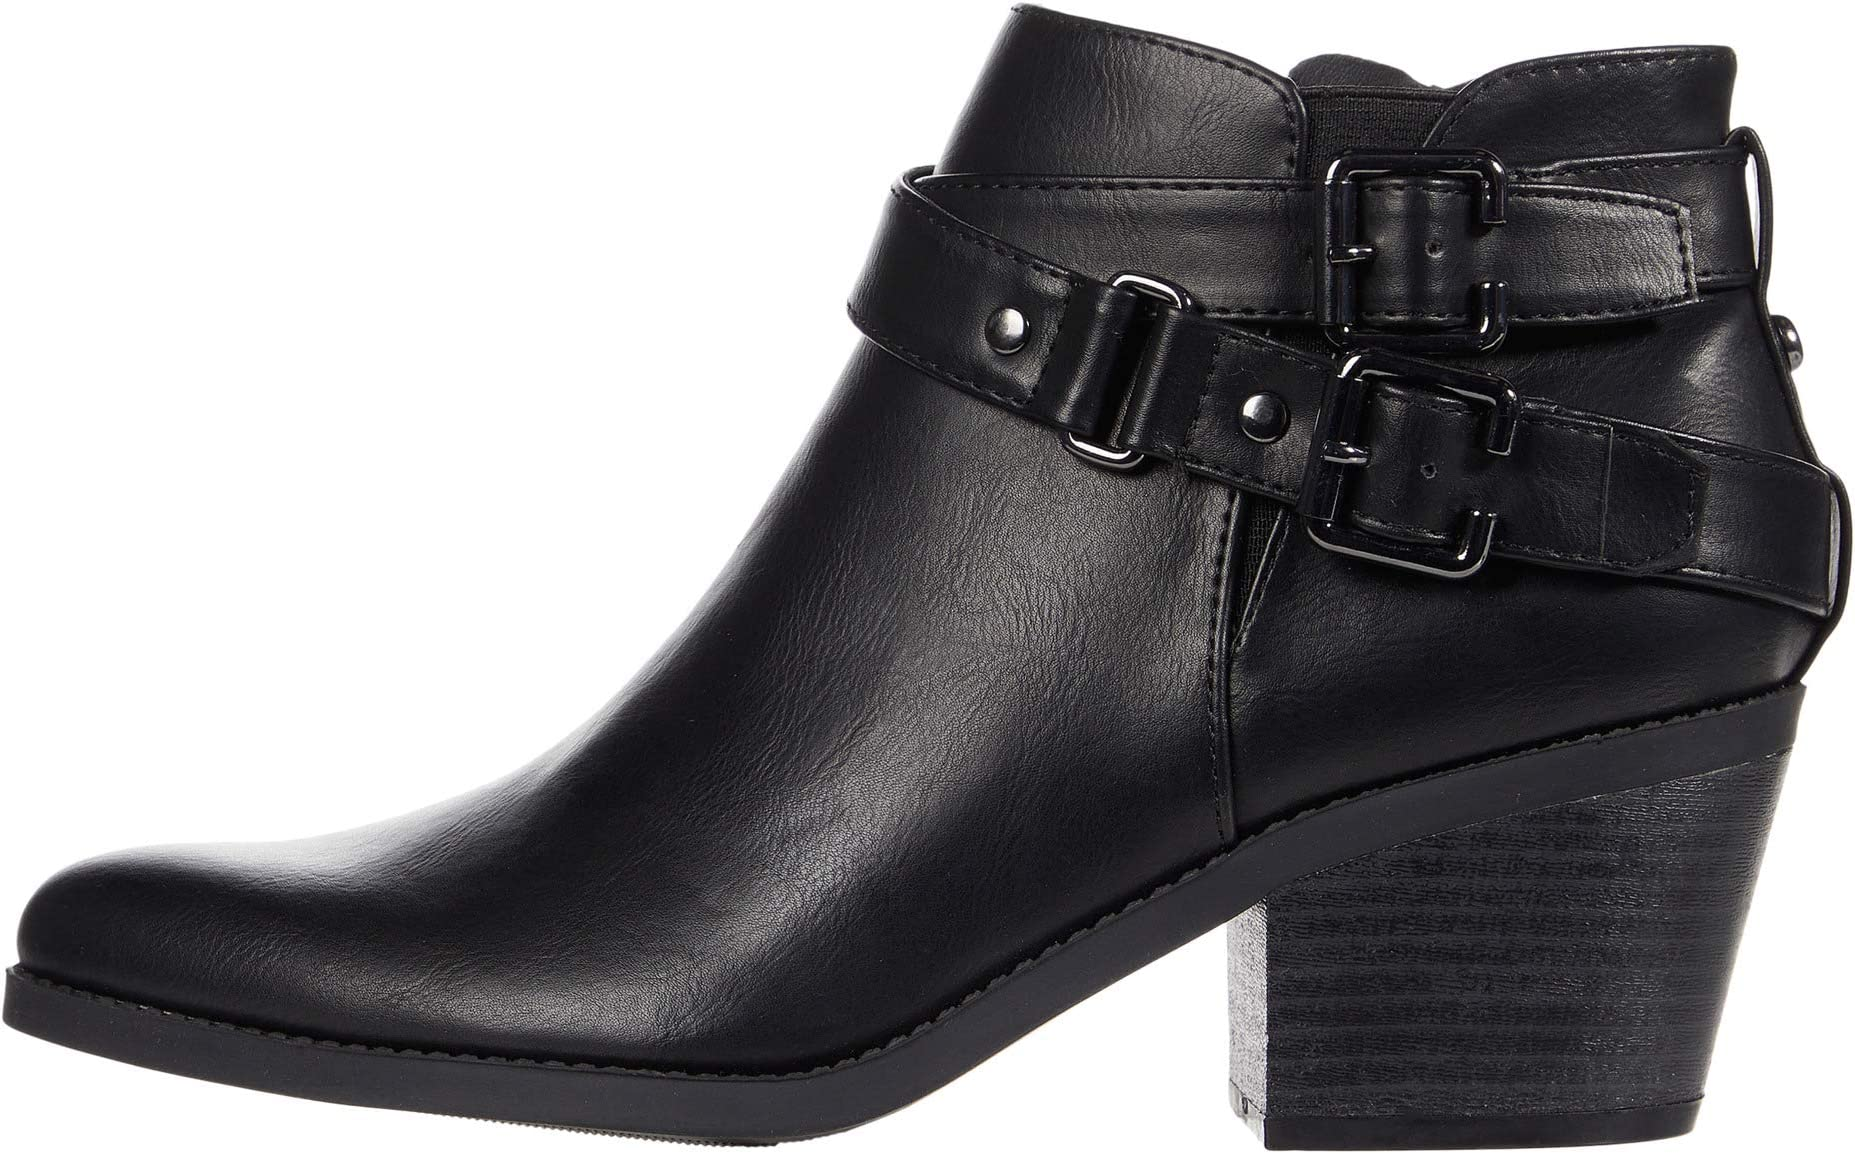 GBG Los Angeles Delray | Women's shoes | 2020 Newest